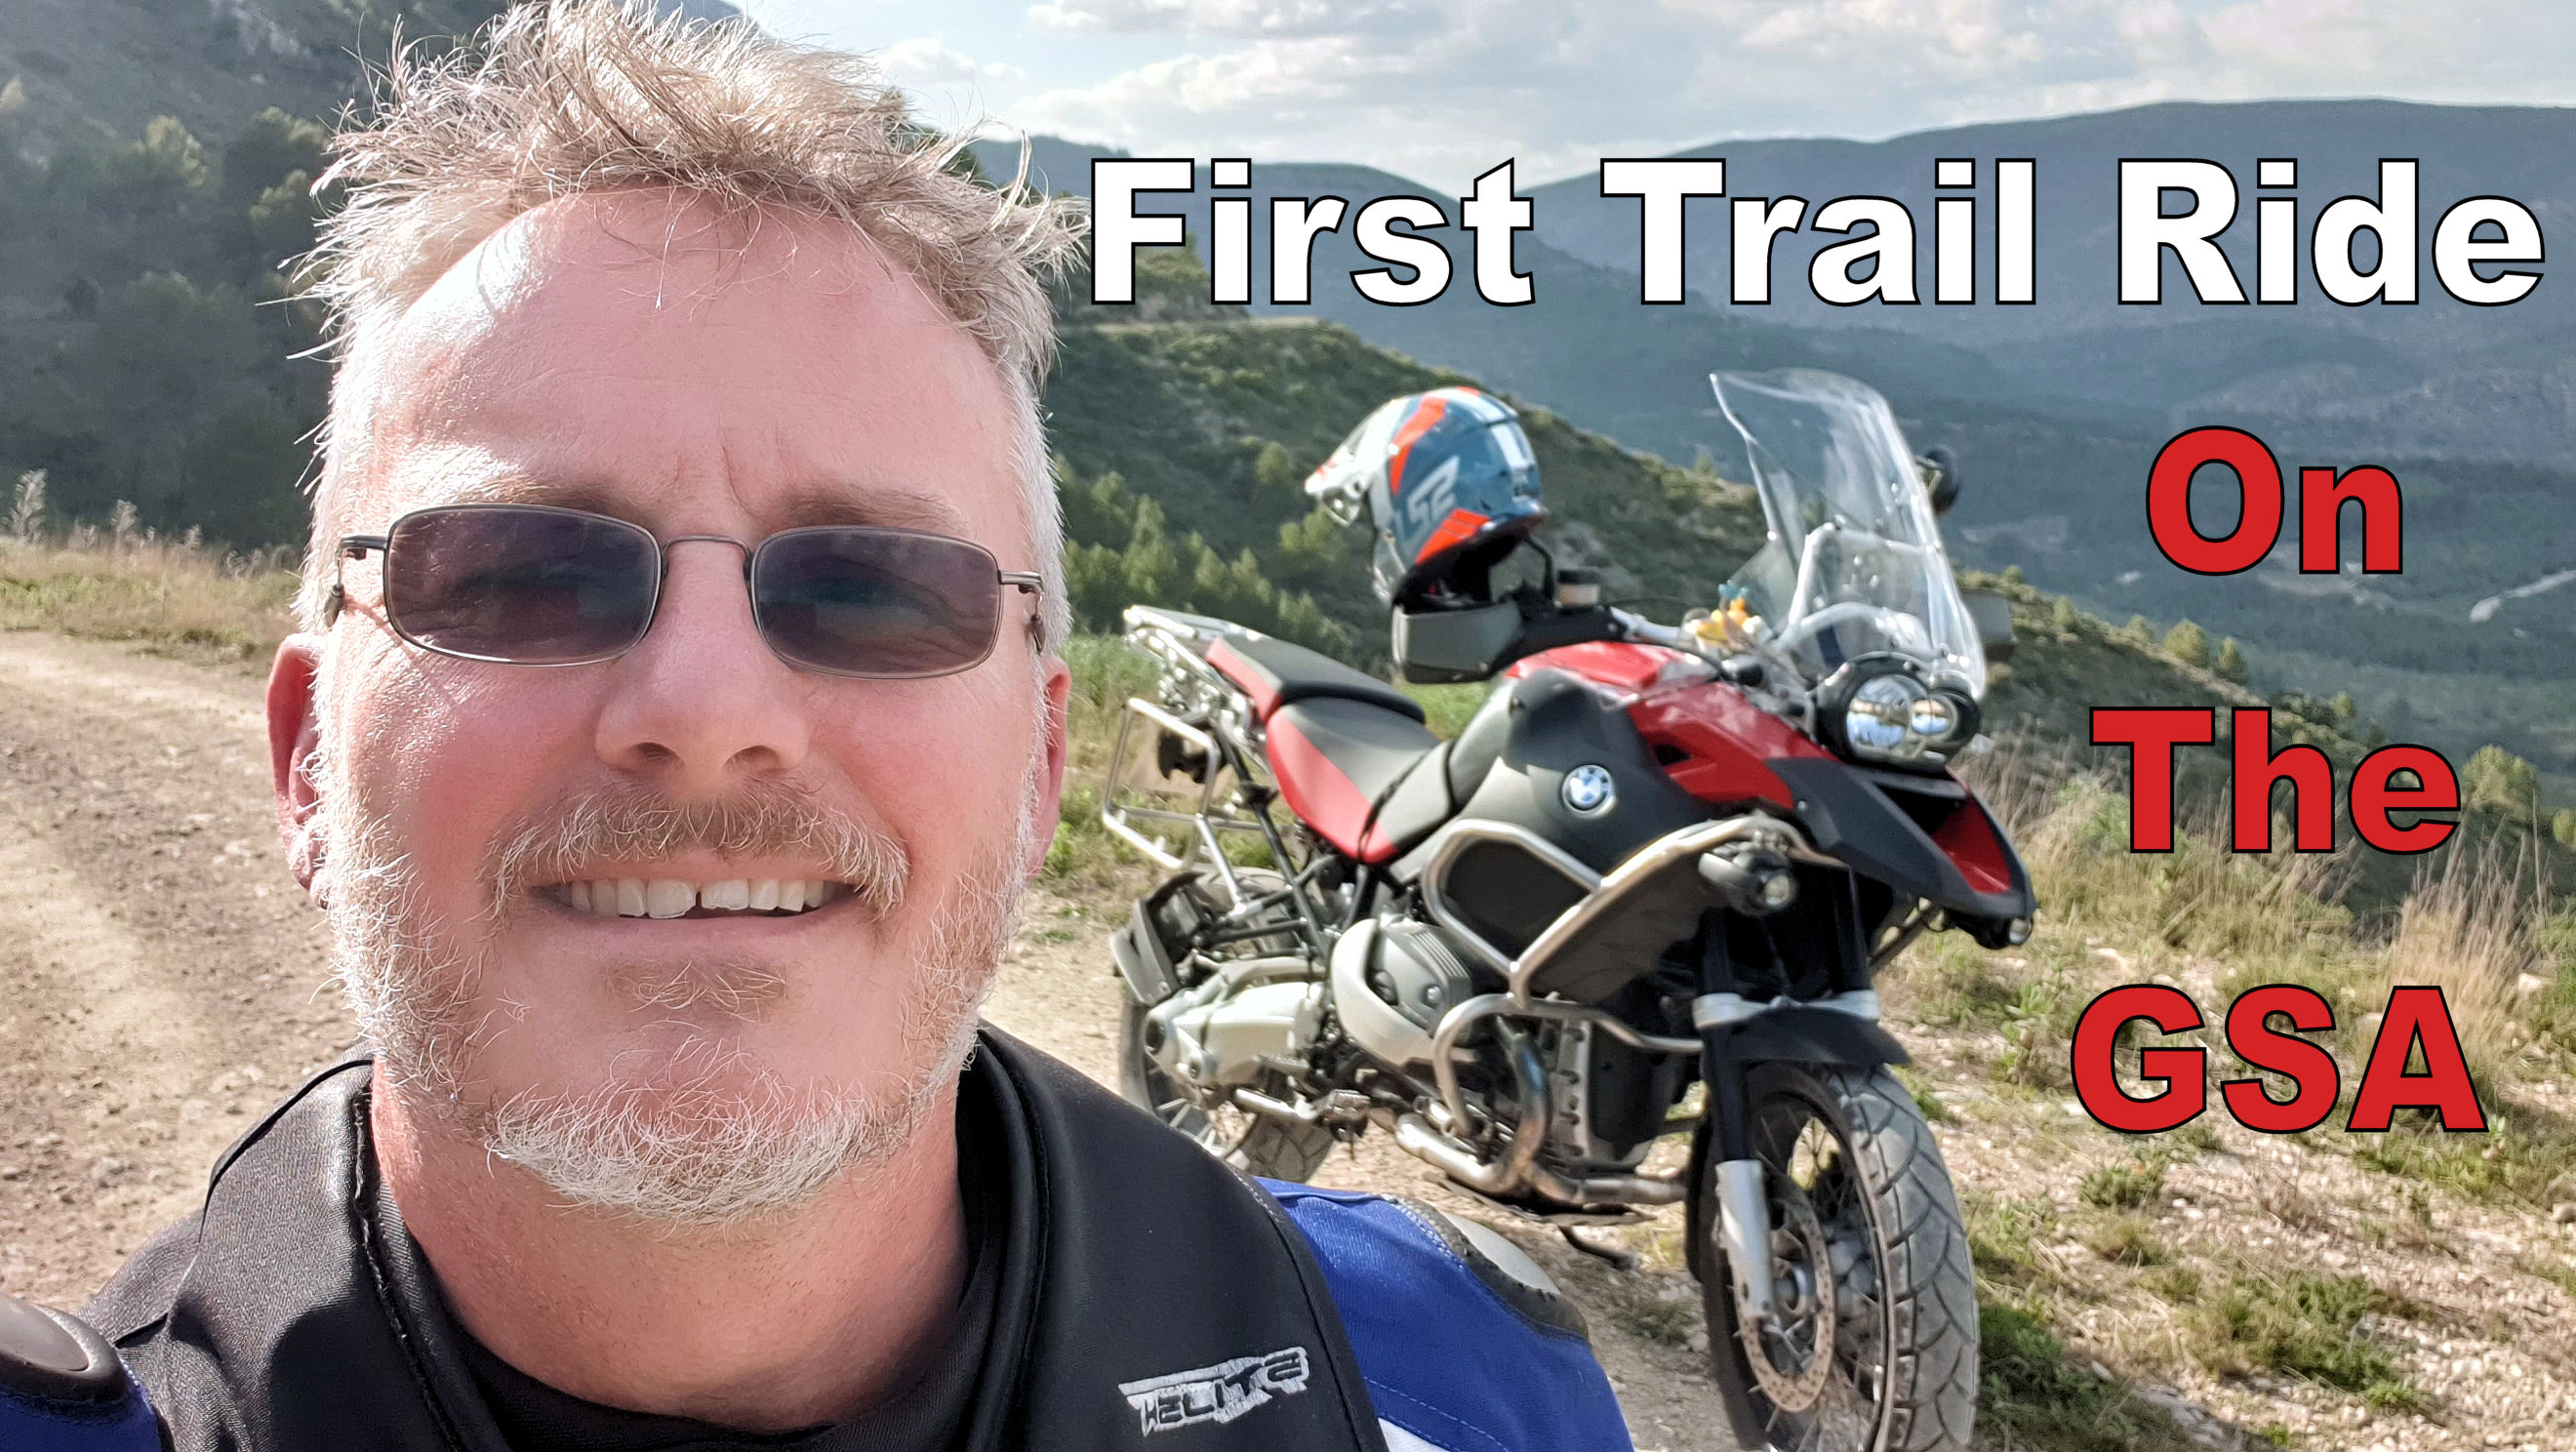 Chris from Bikers España stood with a BMW R1200GSA in the mountains